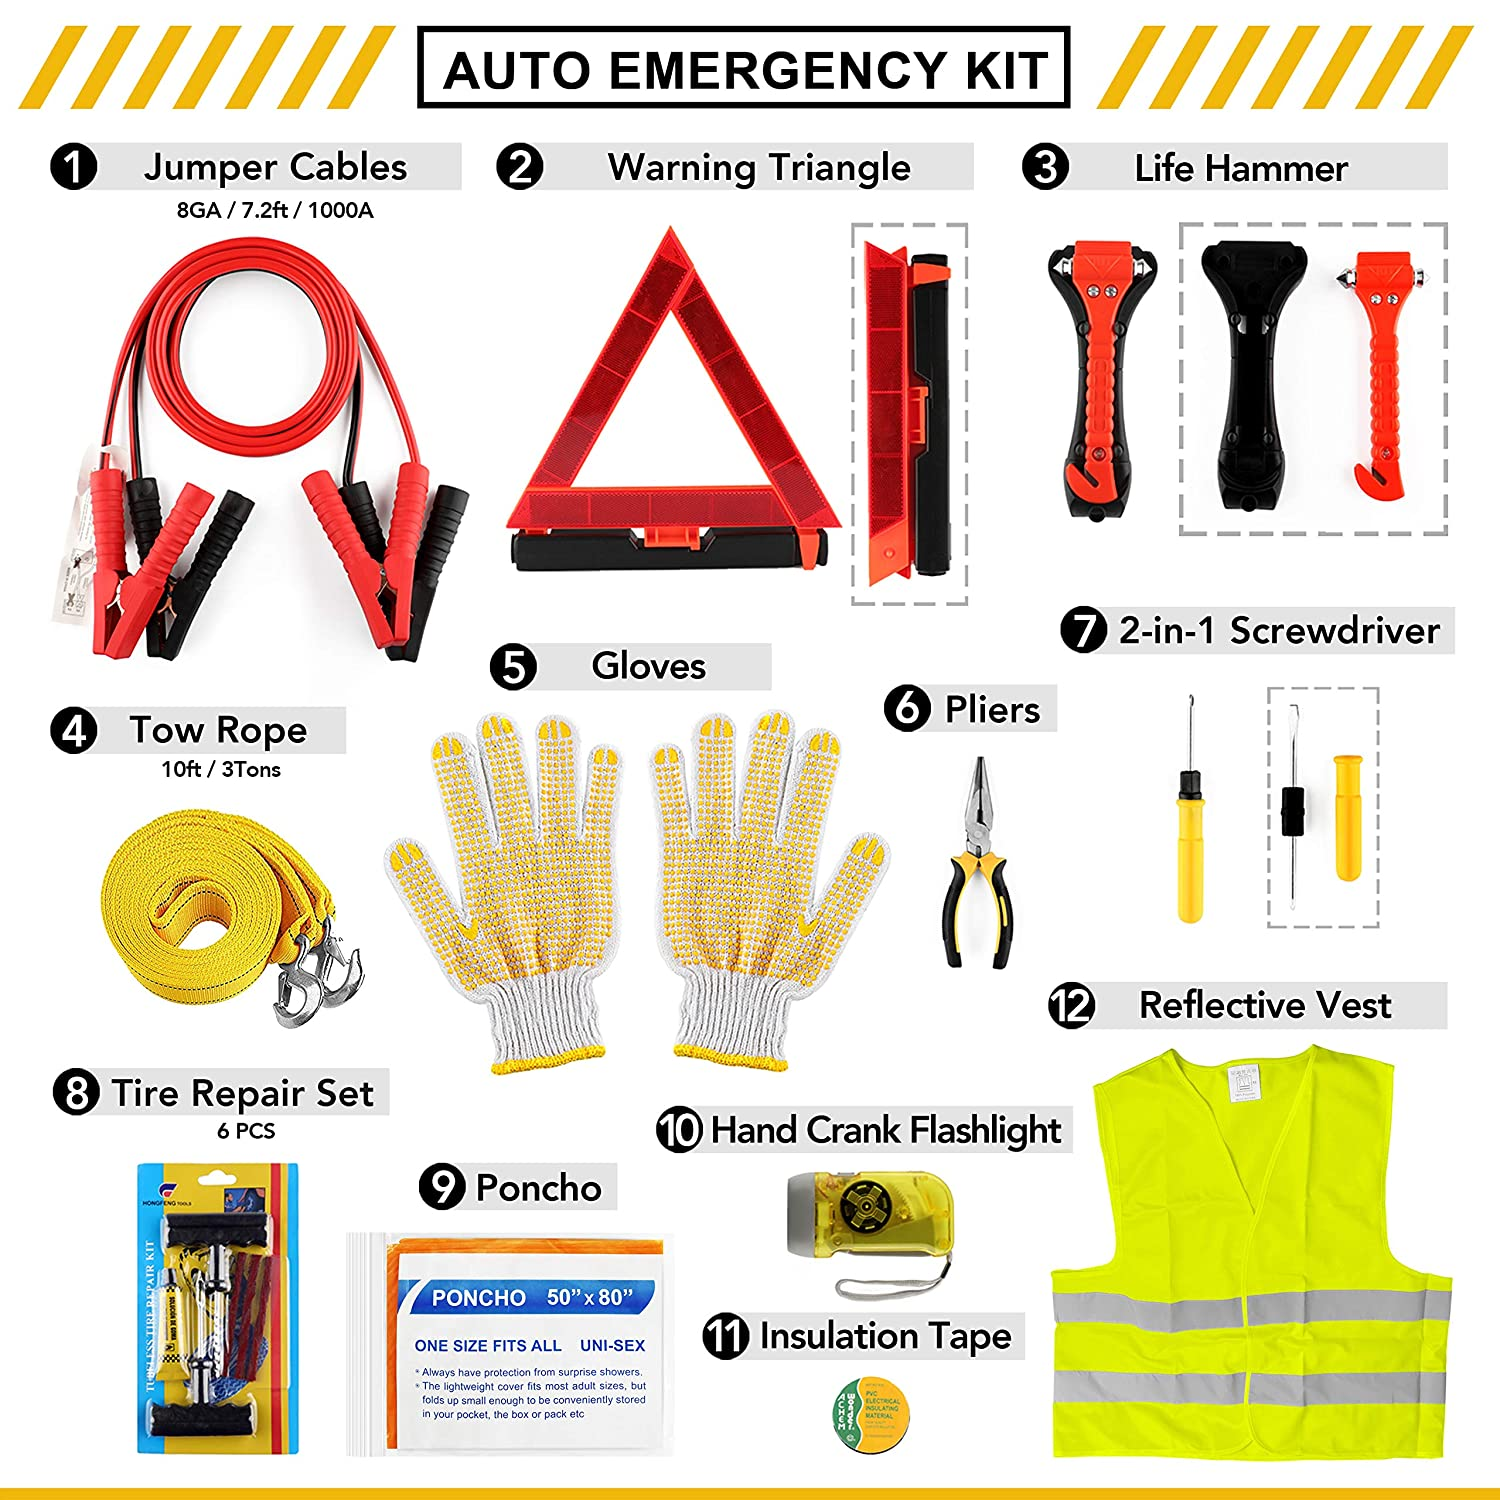 RV and More Kitgo Car Emergency Kit Survival Flashlight Red Premium Roadside Assistance Essentials with Jumper Cables Shovel Screwdriver Set Ideal Auto Road Safety Kit for Winter Truck